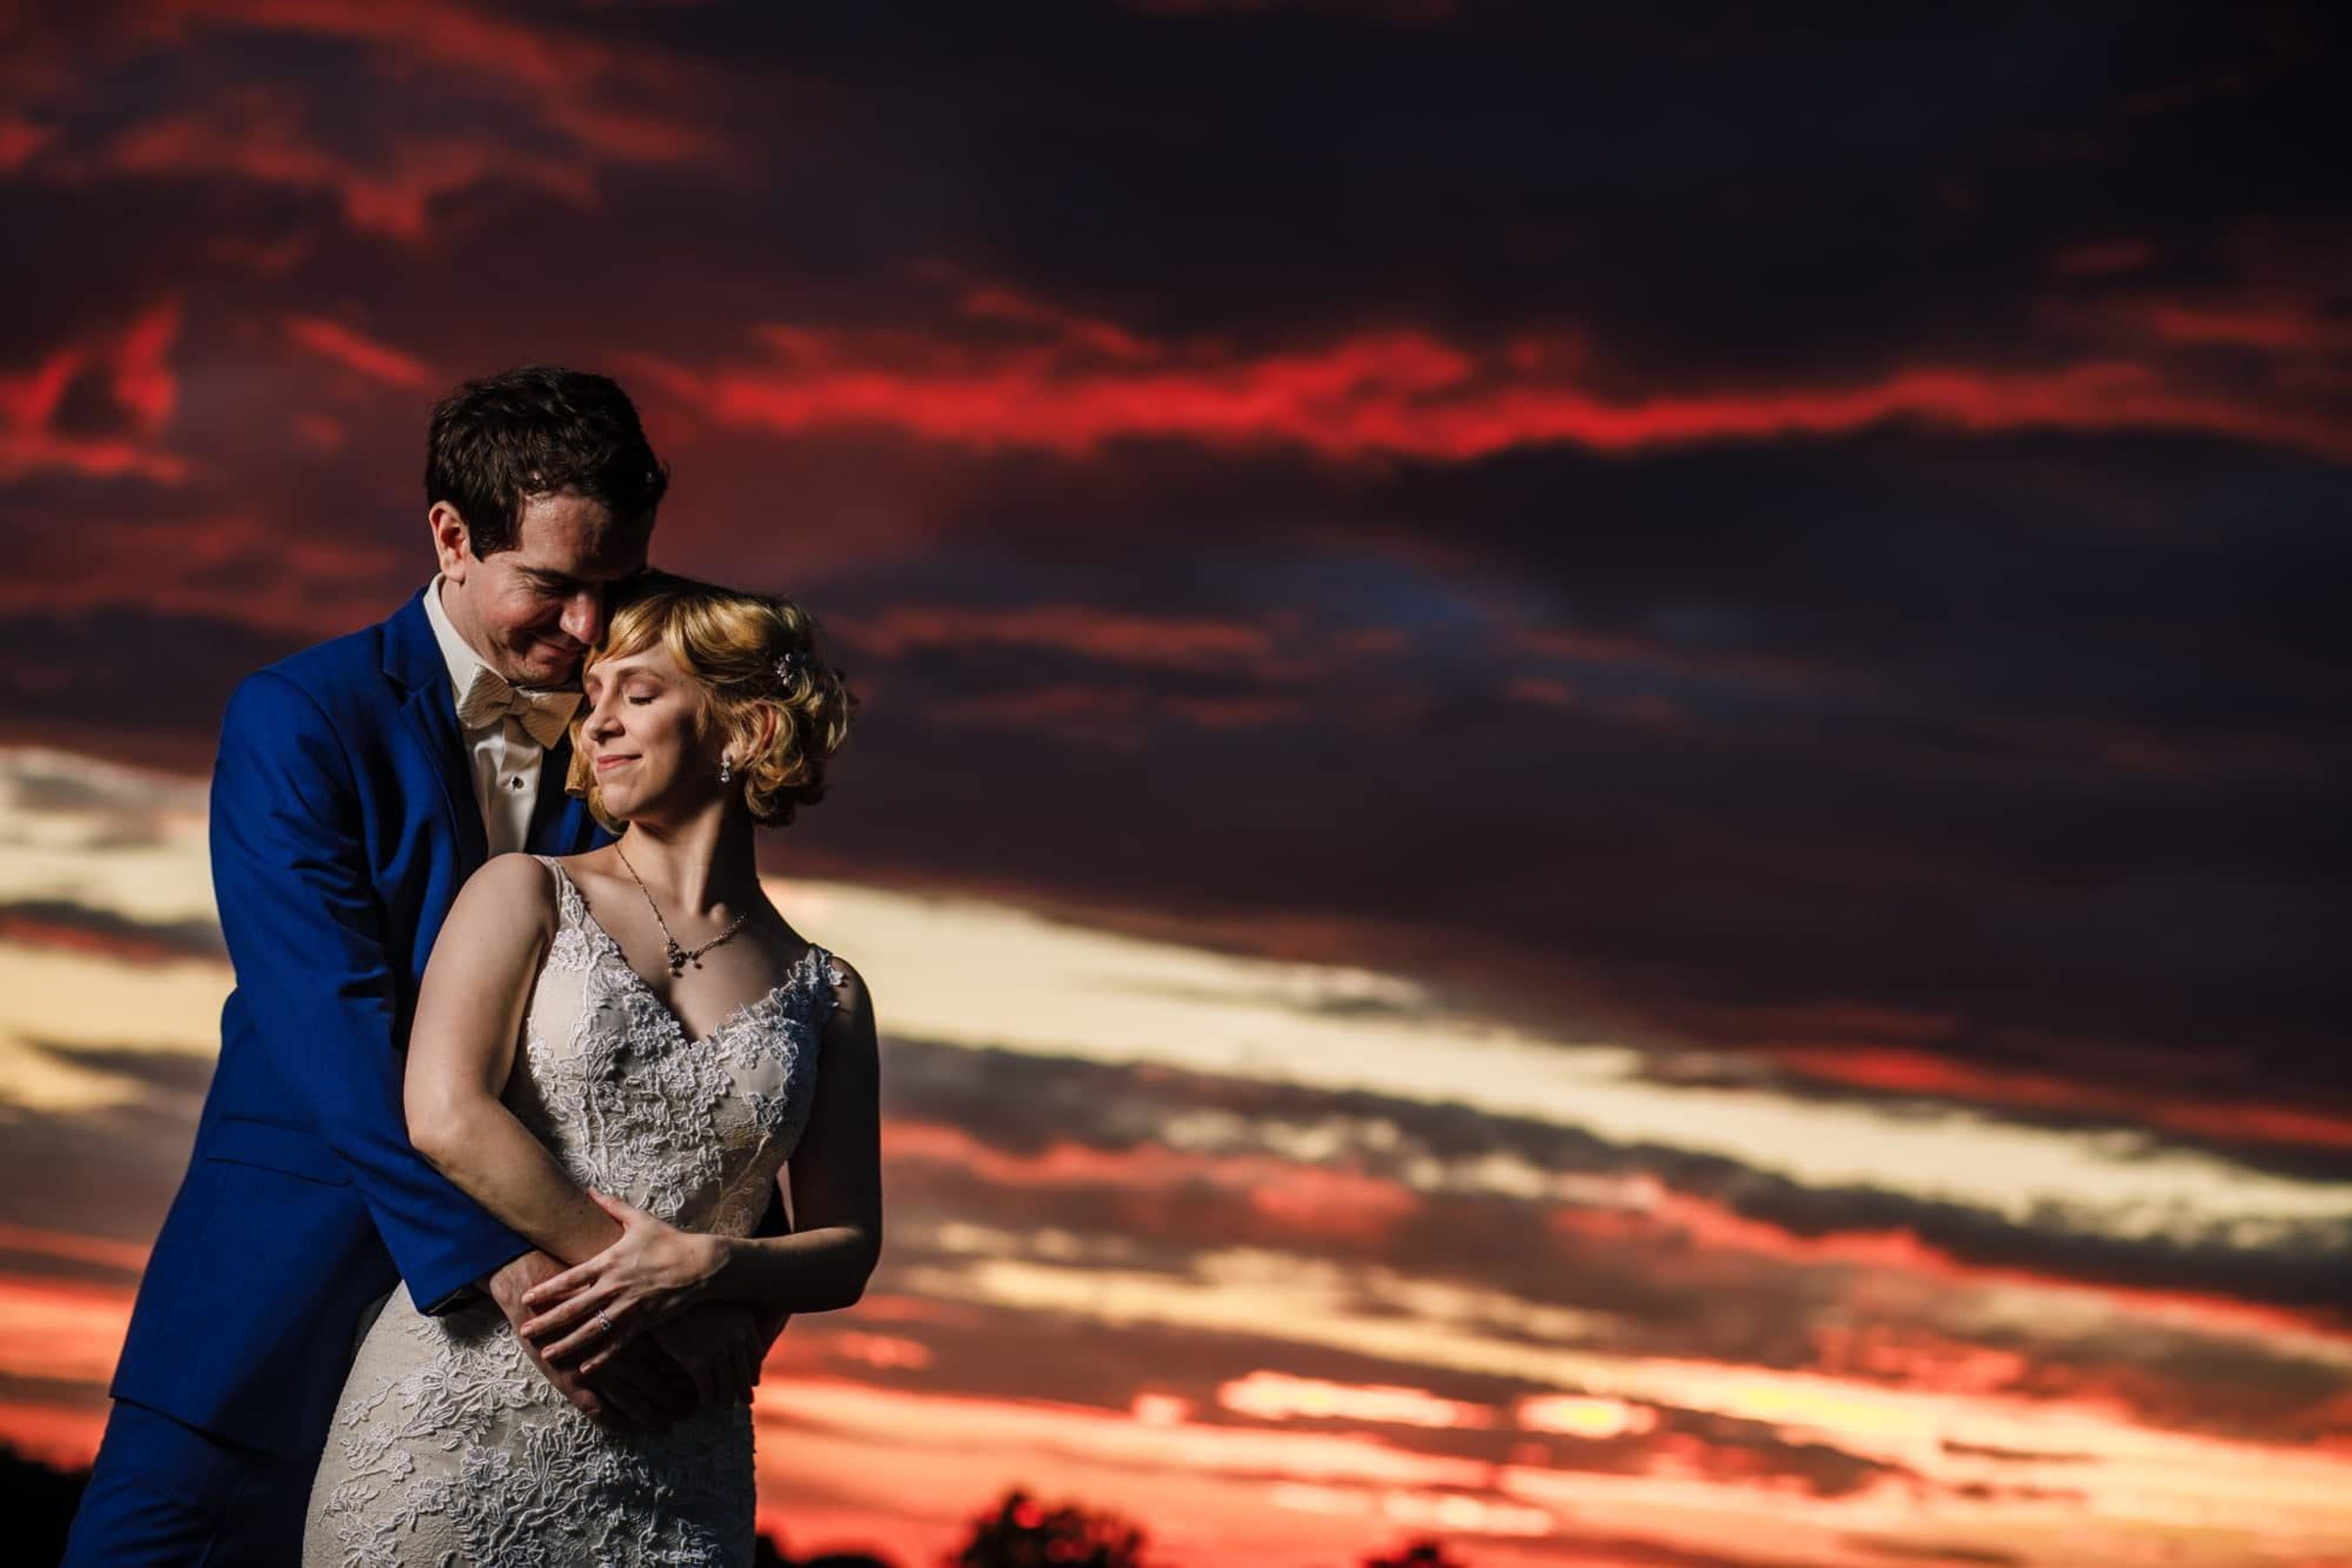 Bride and groom pose against sunset - photo by Photography by Brea